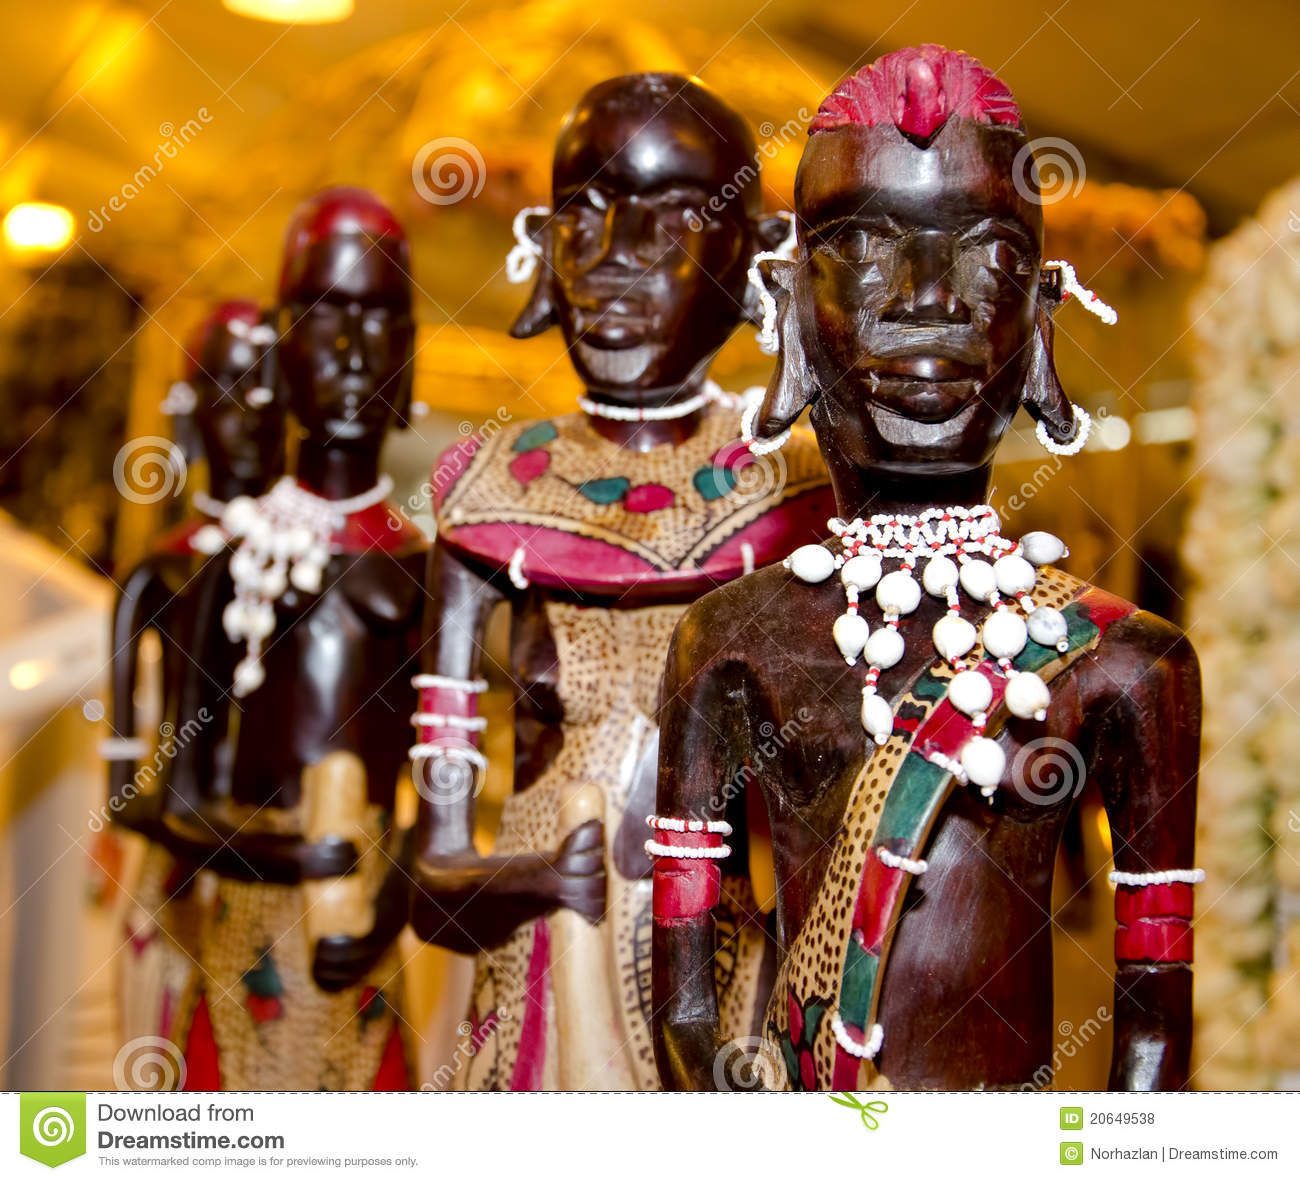 Classroom Design And Management ~ Wooden african statue royalty free stock photos image